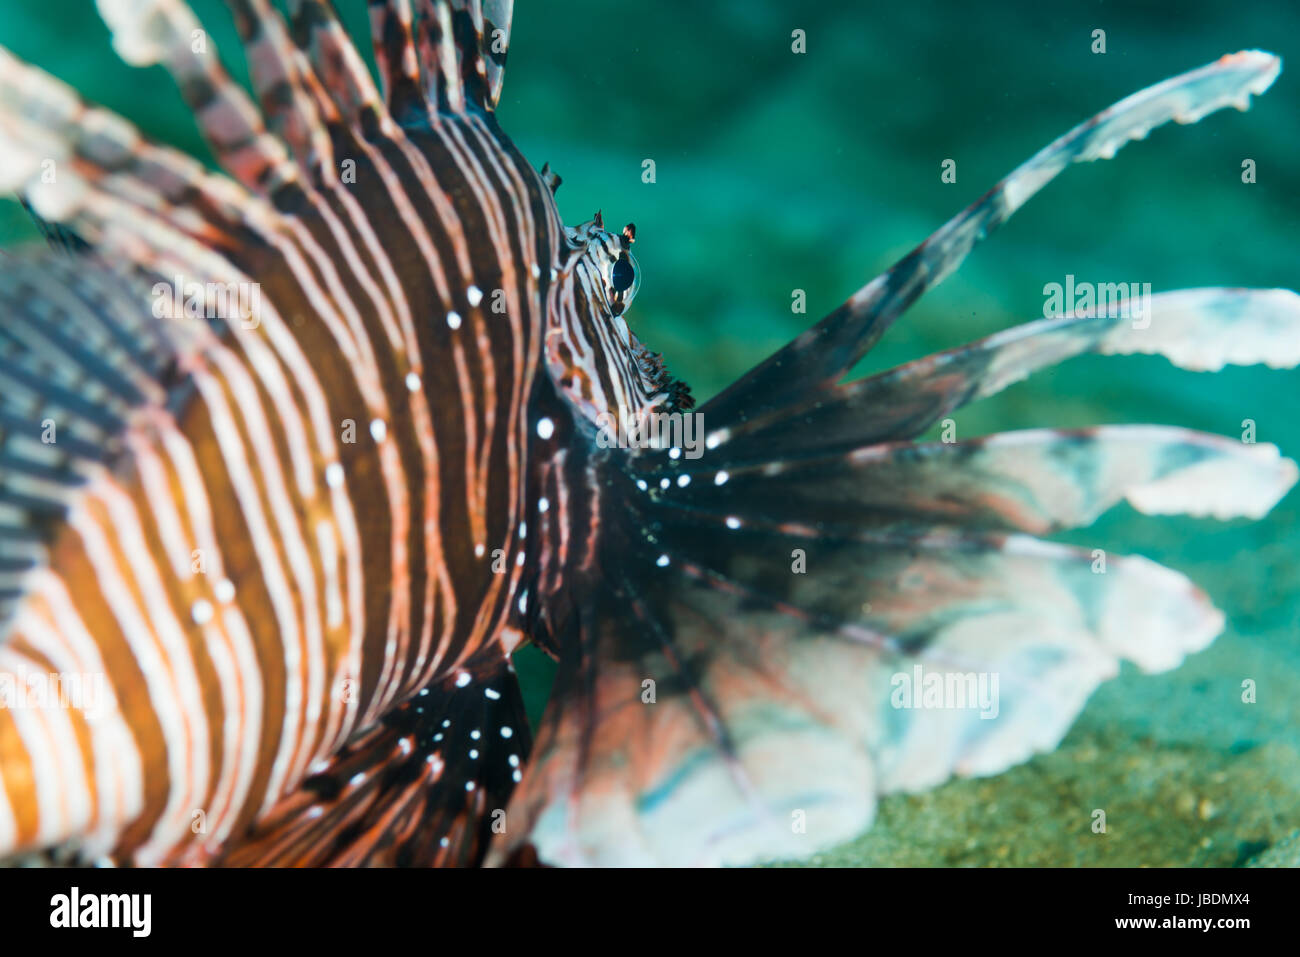 a scorpion fish rest on the sandy bottom  Death of water 12m at Owase, Mie, Japan - Stock Image